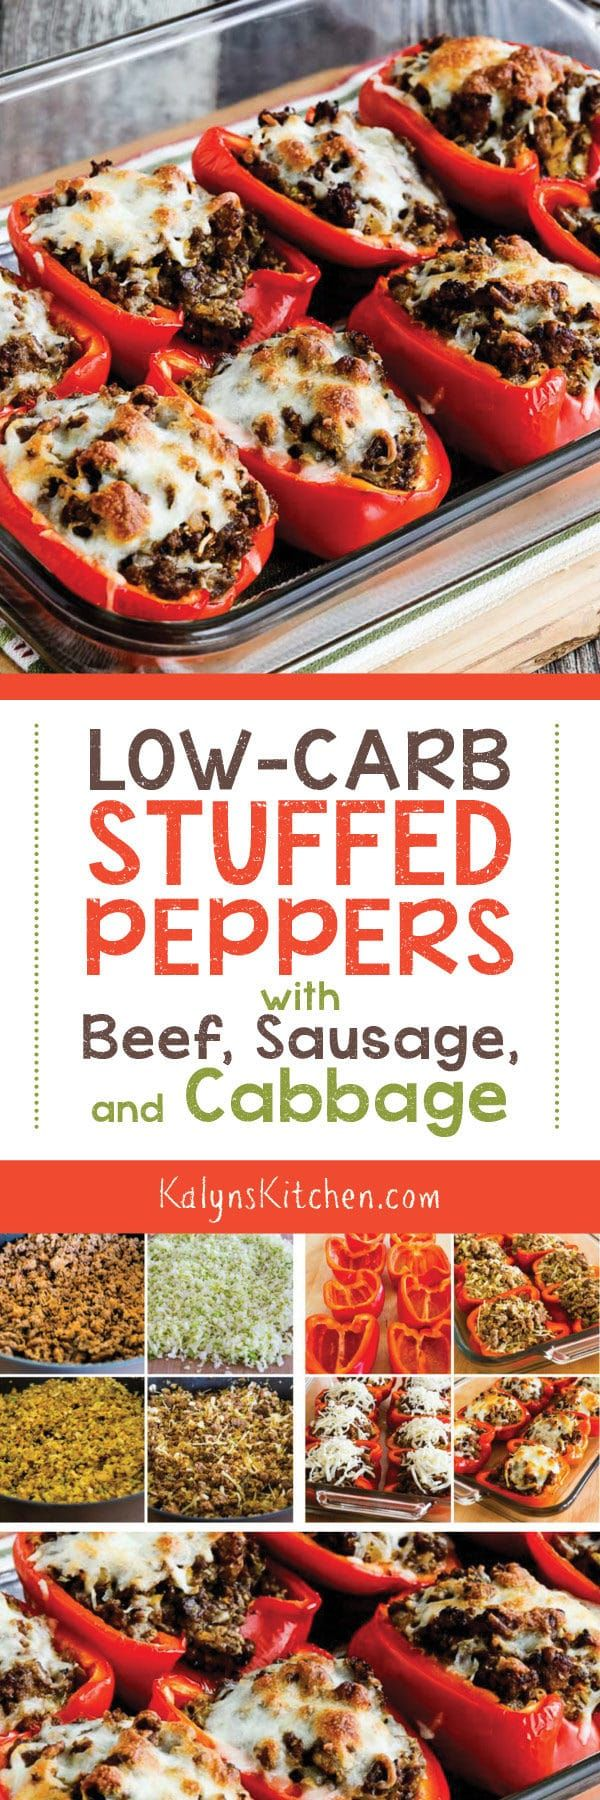 Low-Carb Stuffed Peppers with Beef, Sausage, and Cabbage found on KalynsKitchen.com